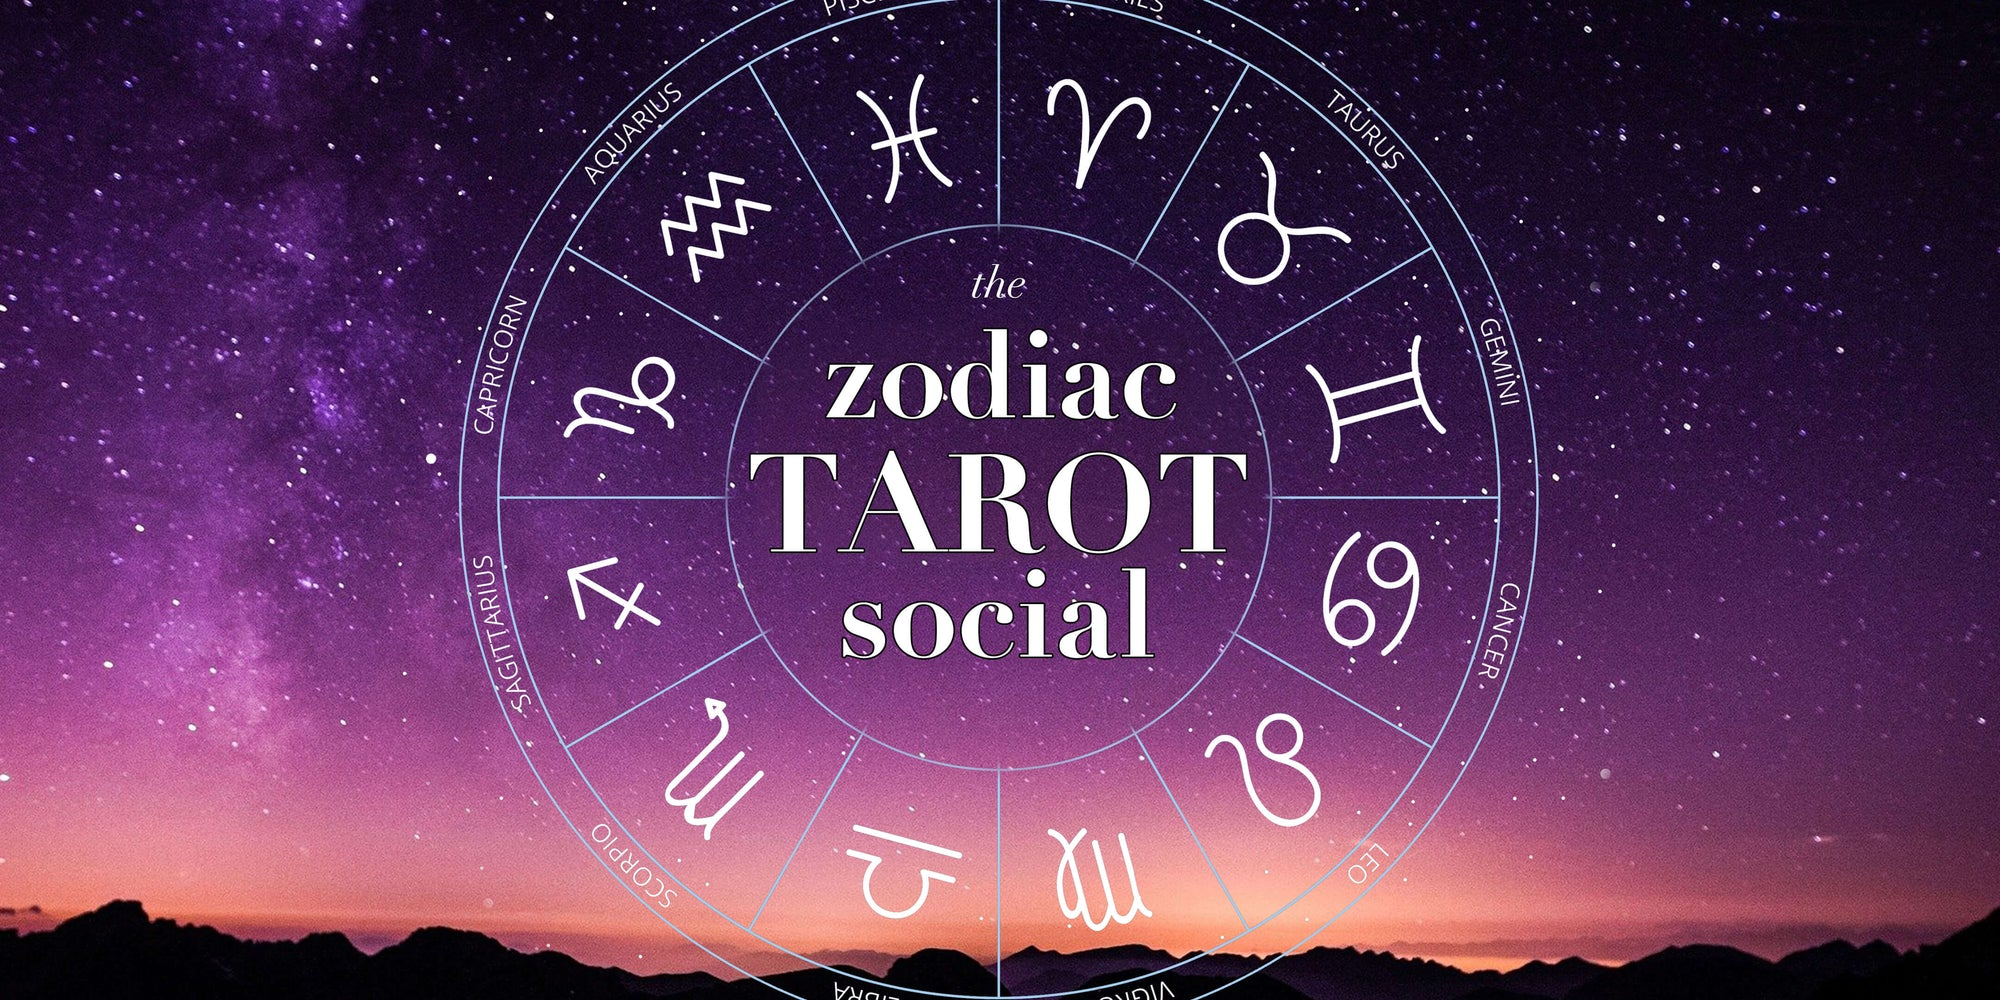 The Zodiac Tarot Social